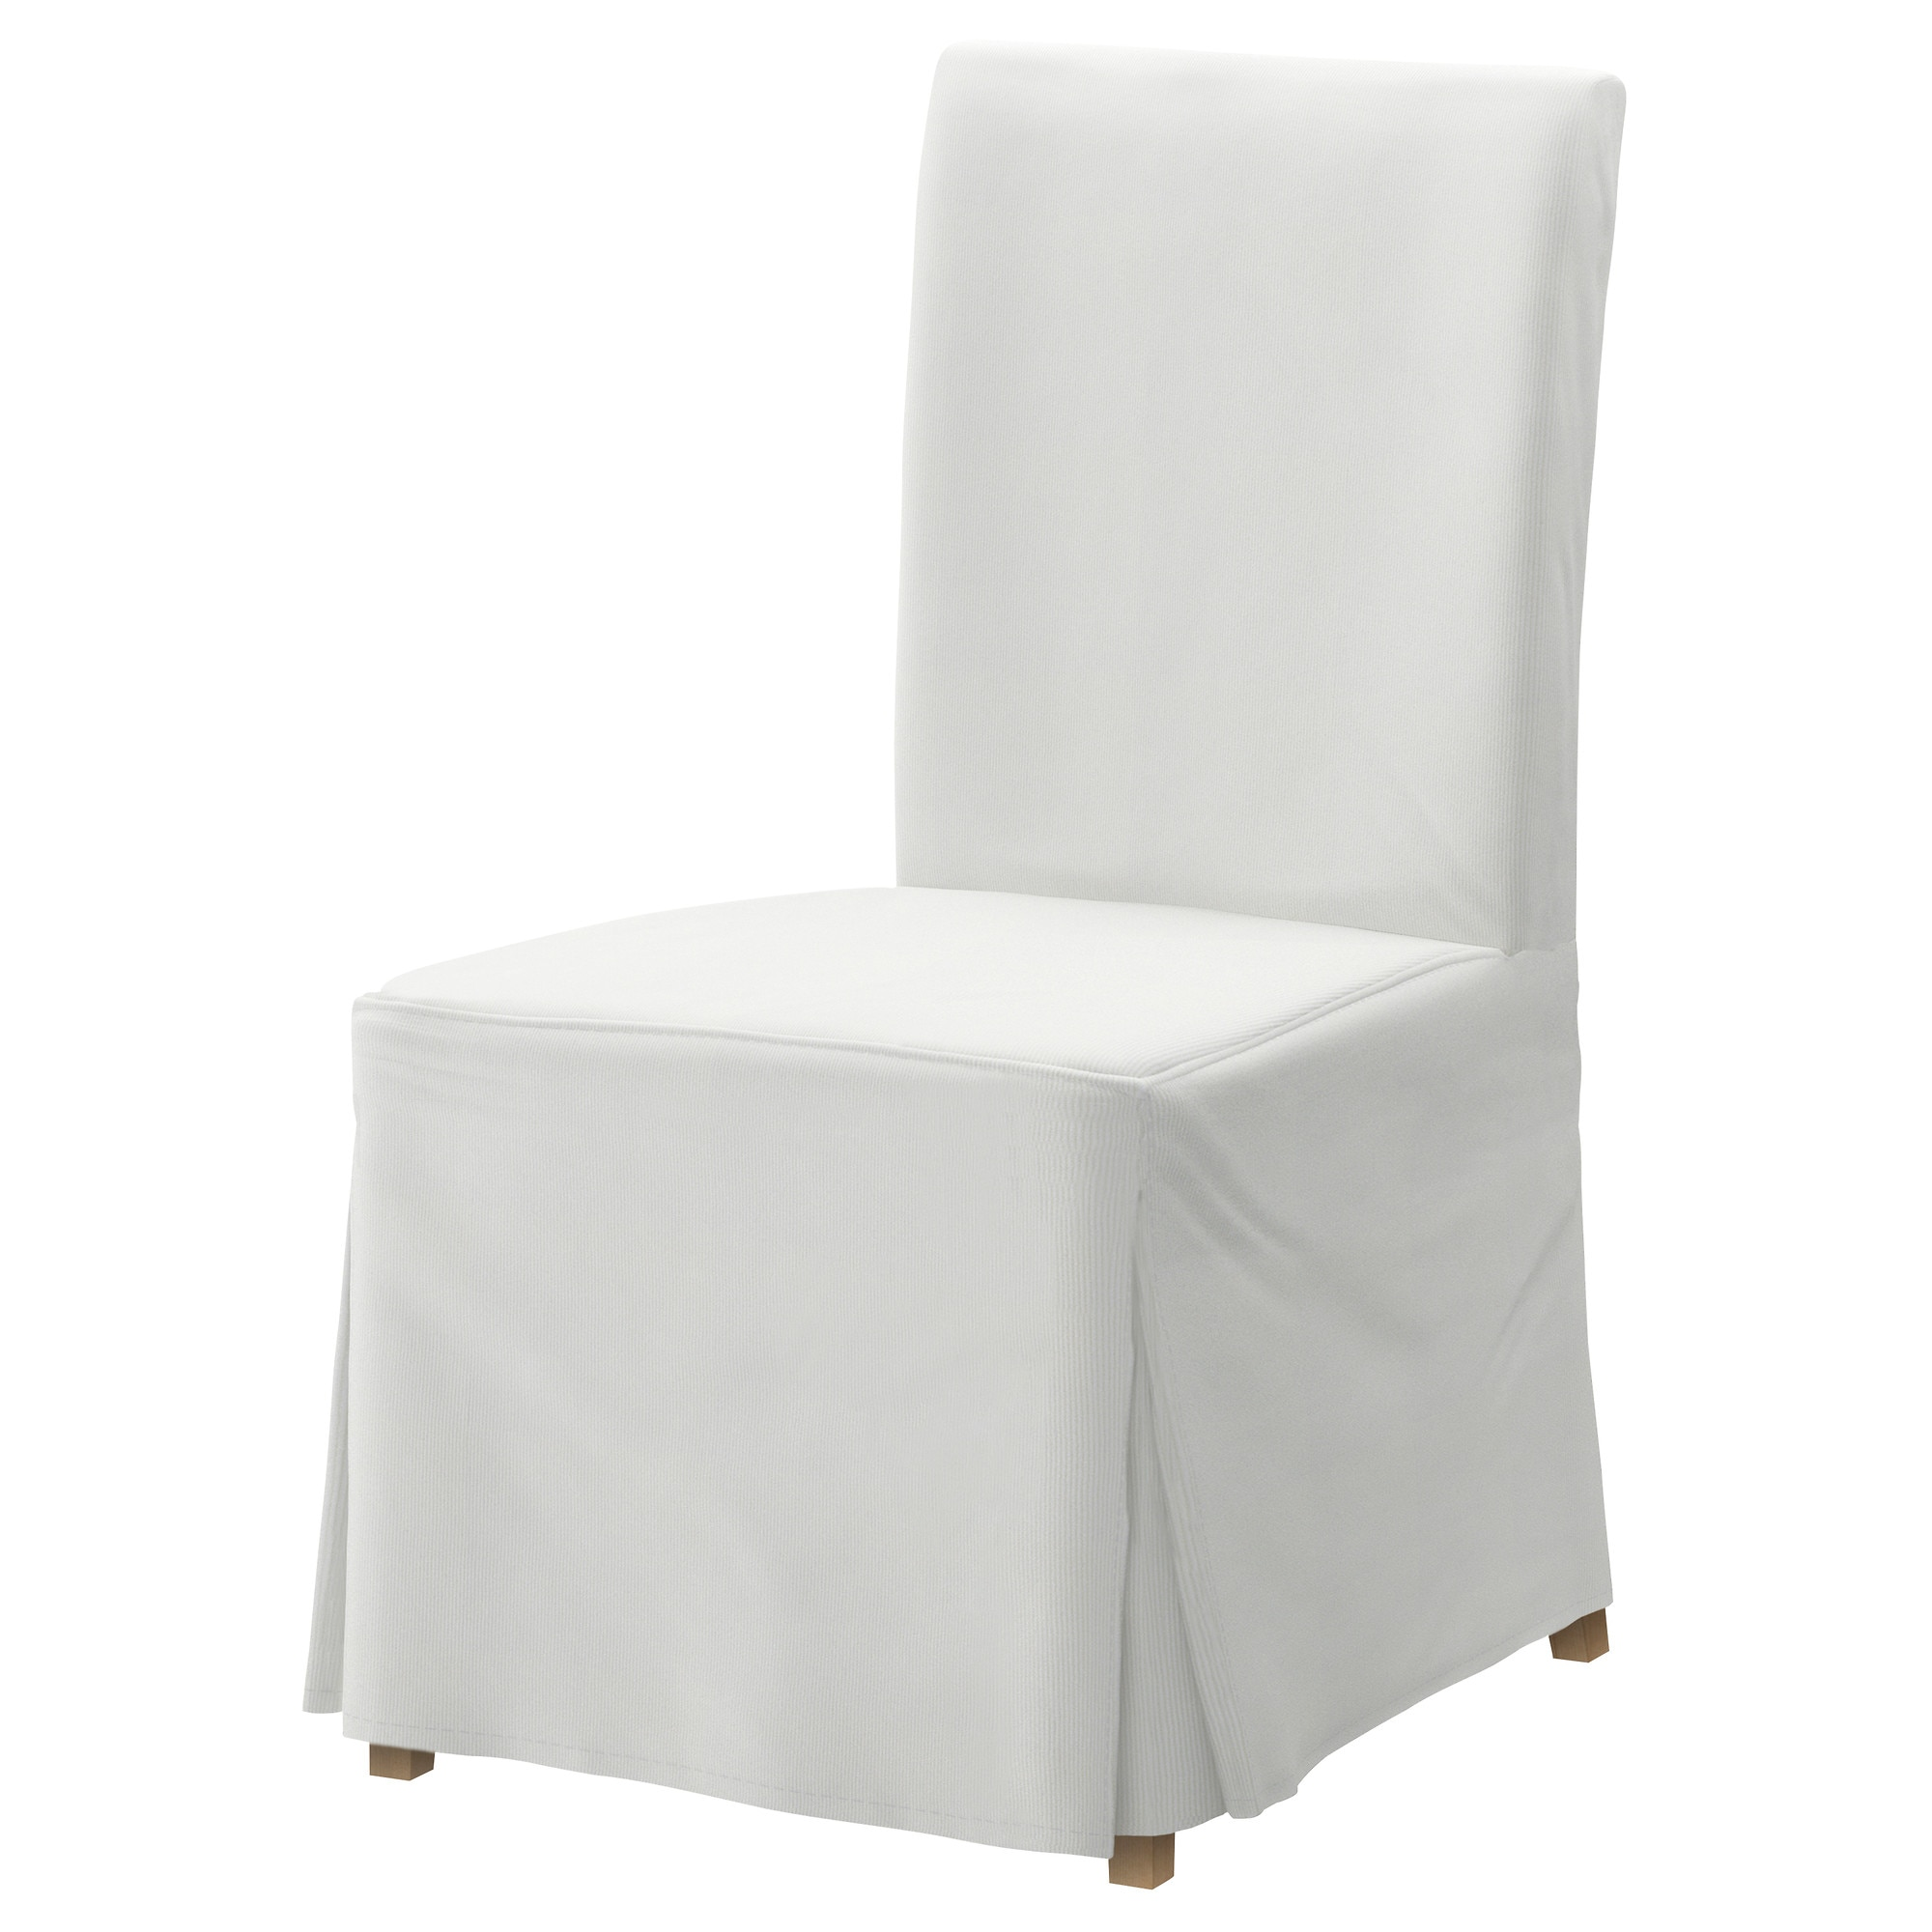 HENRIKSDAL Chair with long coverBlekinge white birchIKEA